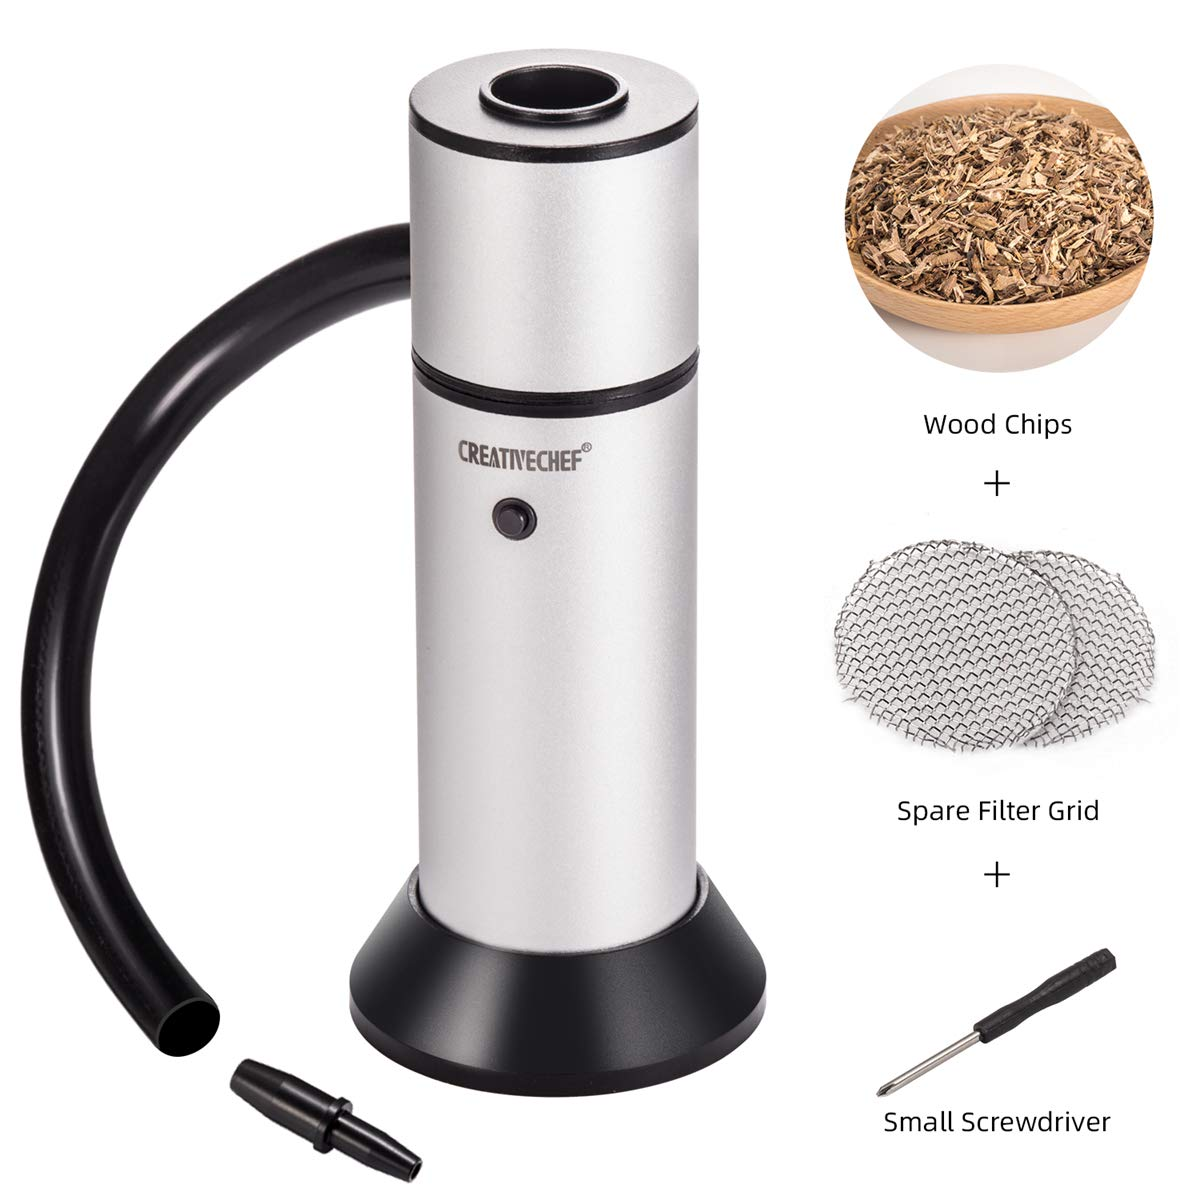 TMKEFFC Portable Smoker, Smoke Gun Food Smoker to Enhance Taste for Meat,Sous Vide, Grill, BBQ, Cocktail Drinks & Cheese. Wood Chips for Smokers (Included) by TMKEFFC